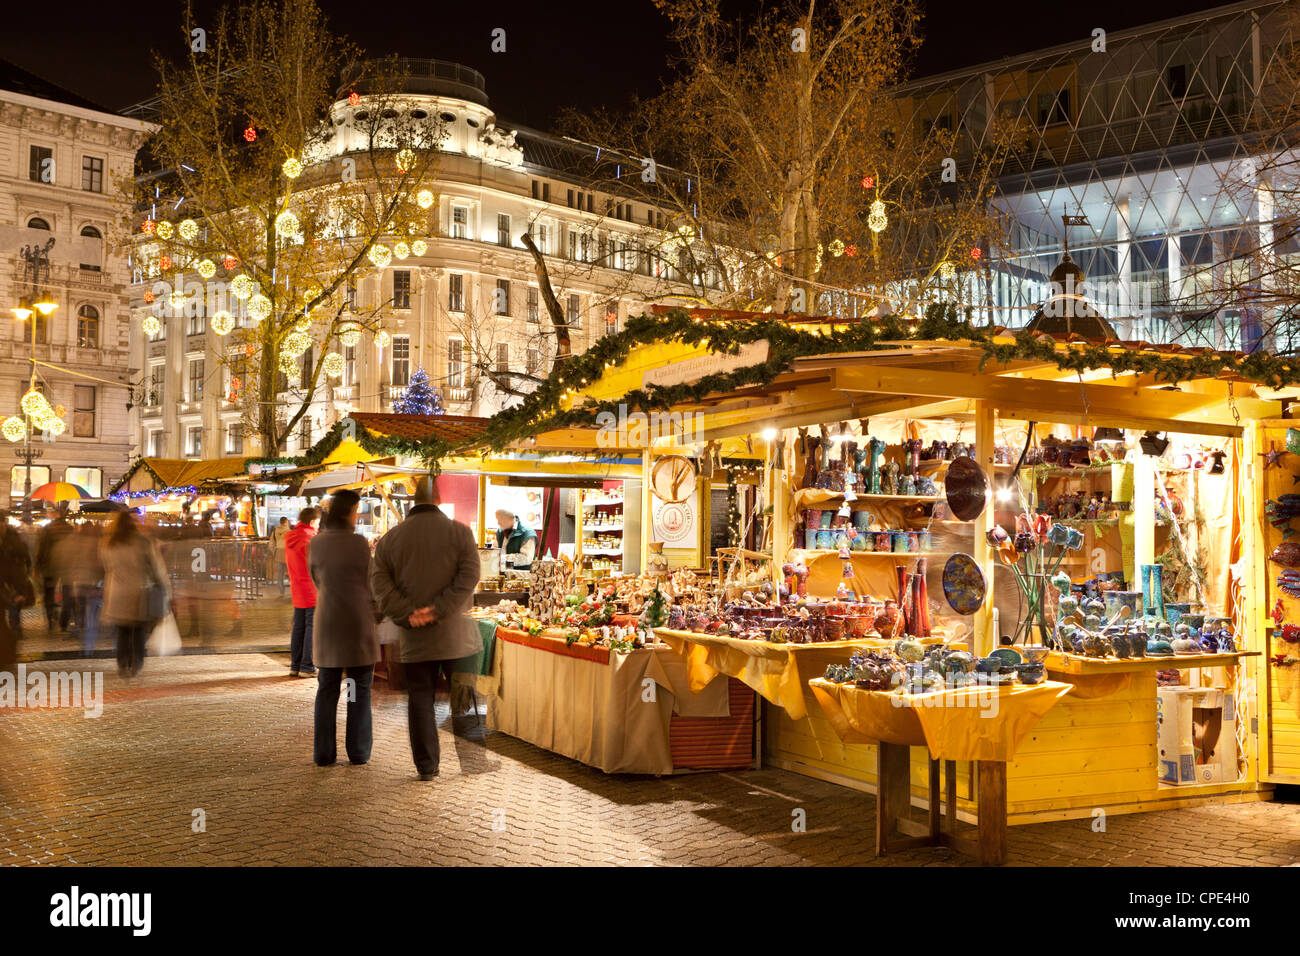 Christmas Market, Vorosmarty Square (Vorosmarty Ter), Budapest, Hungary, Europe - Stock Image